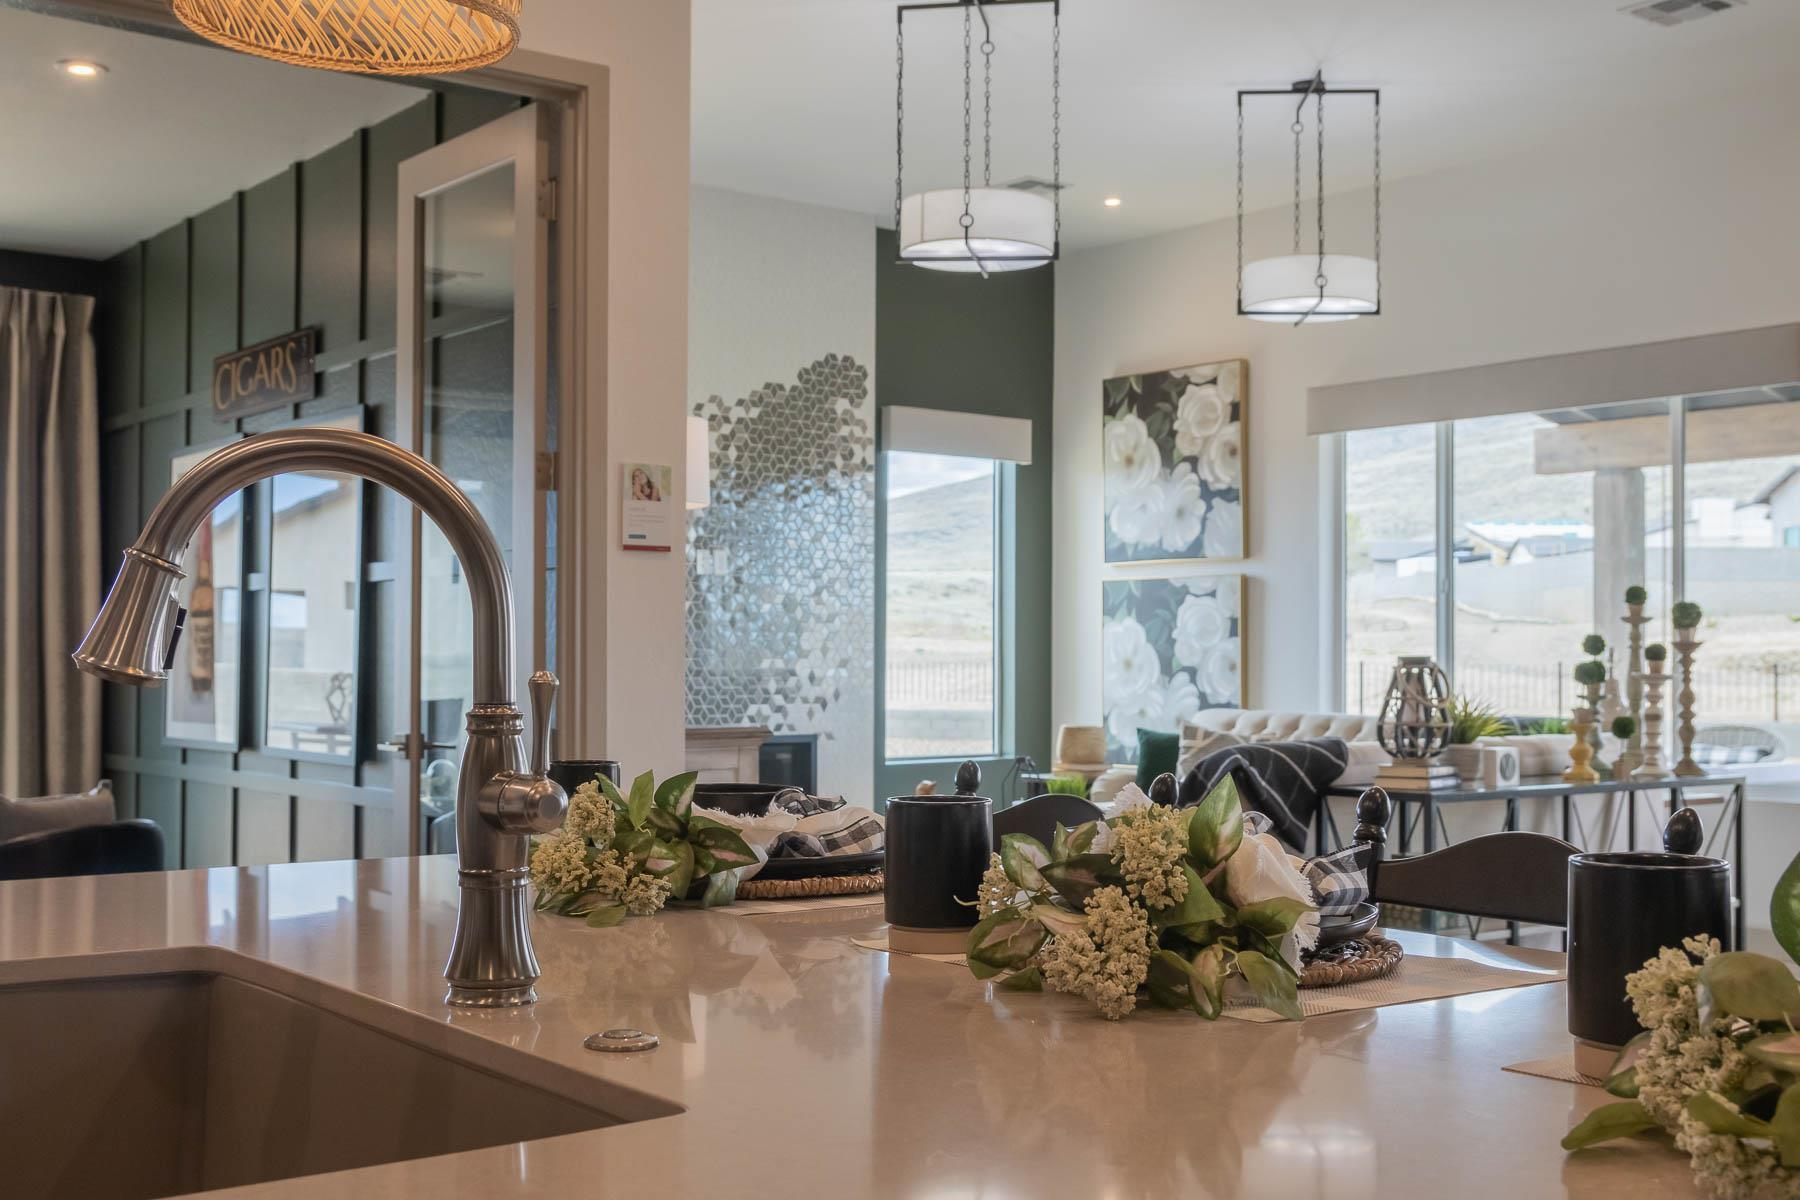 Living Area featured in the J704 By Mandalay Homes in Prescott, AZ